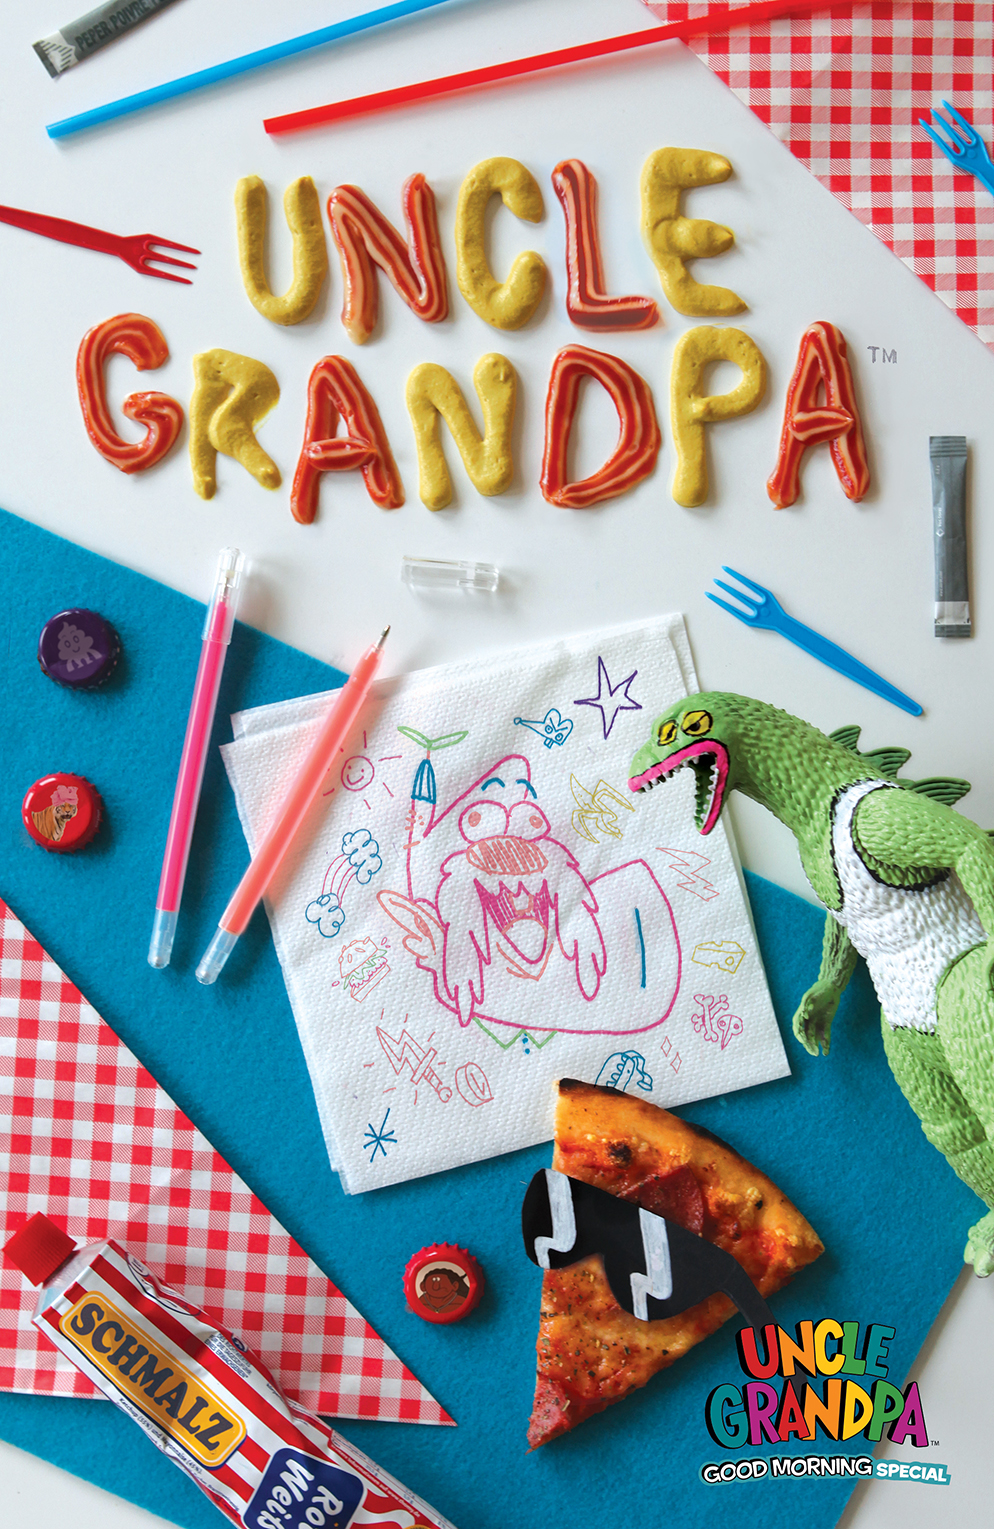 UncleGrandpa_GoodMorning_B_Variant